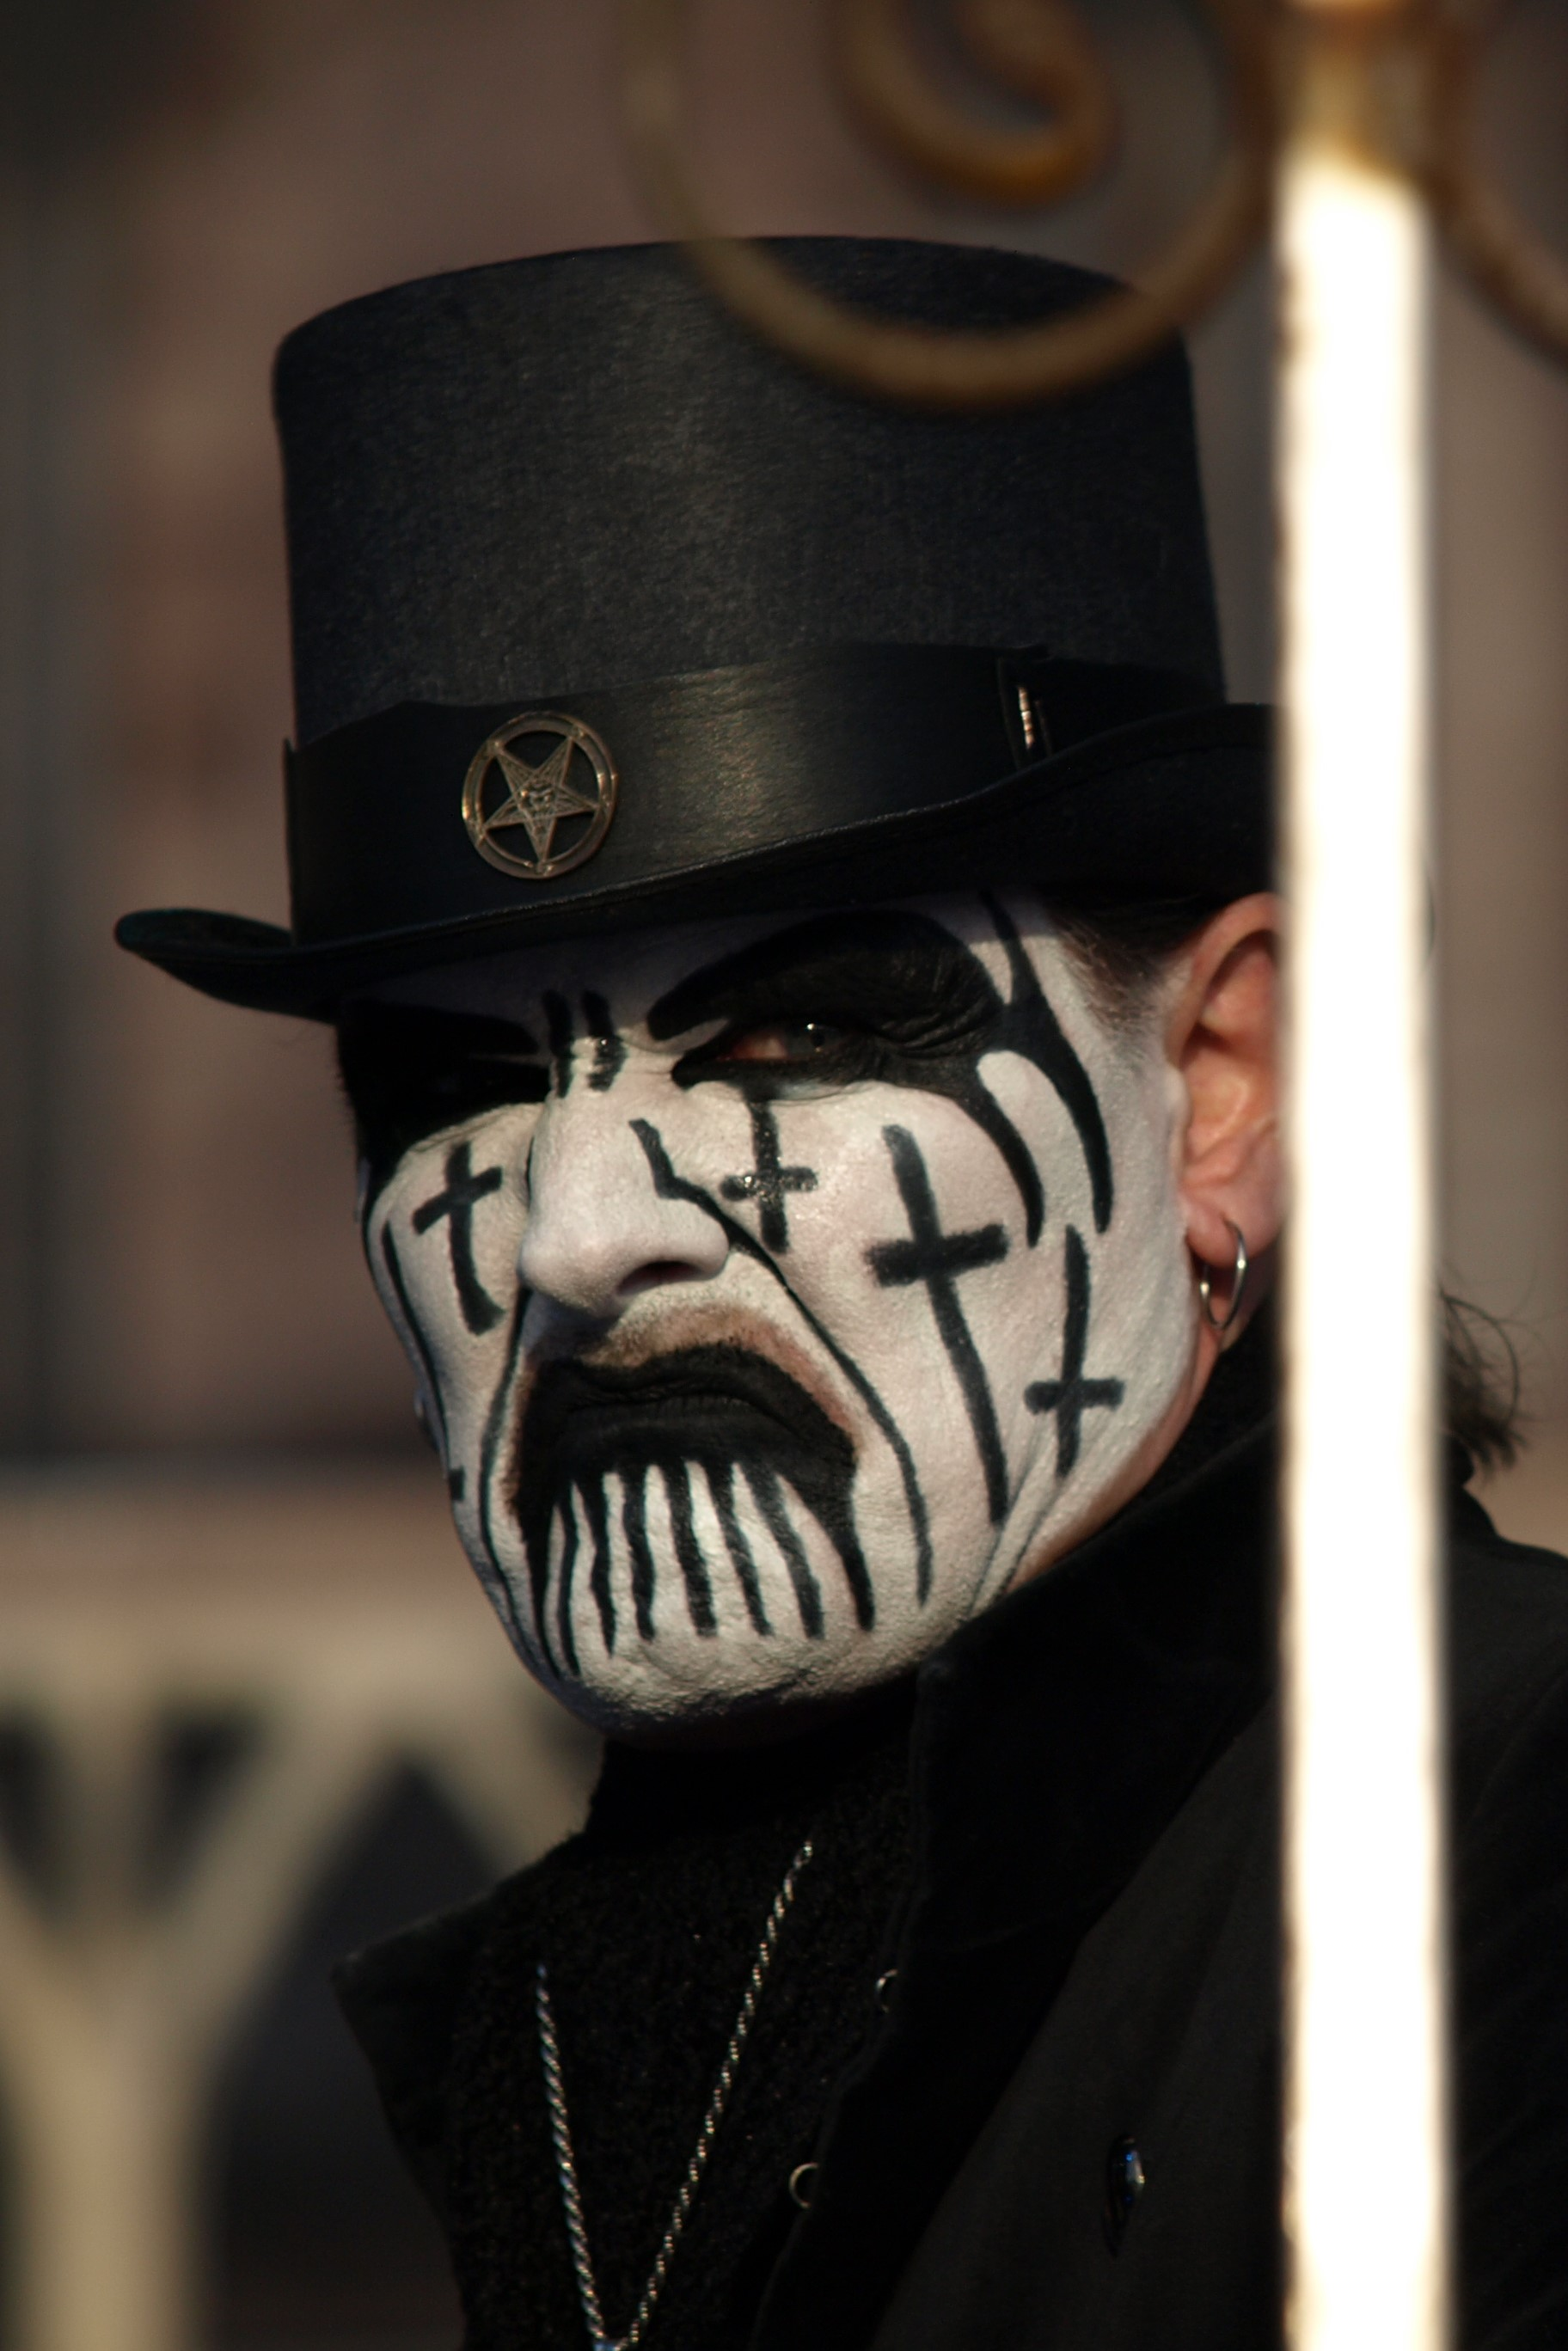 Halloween Afkomst.King Diamond Wikipedia